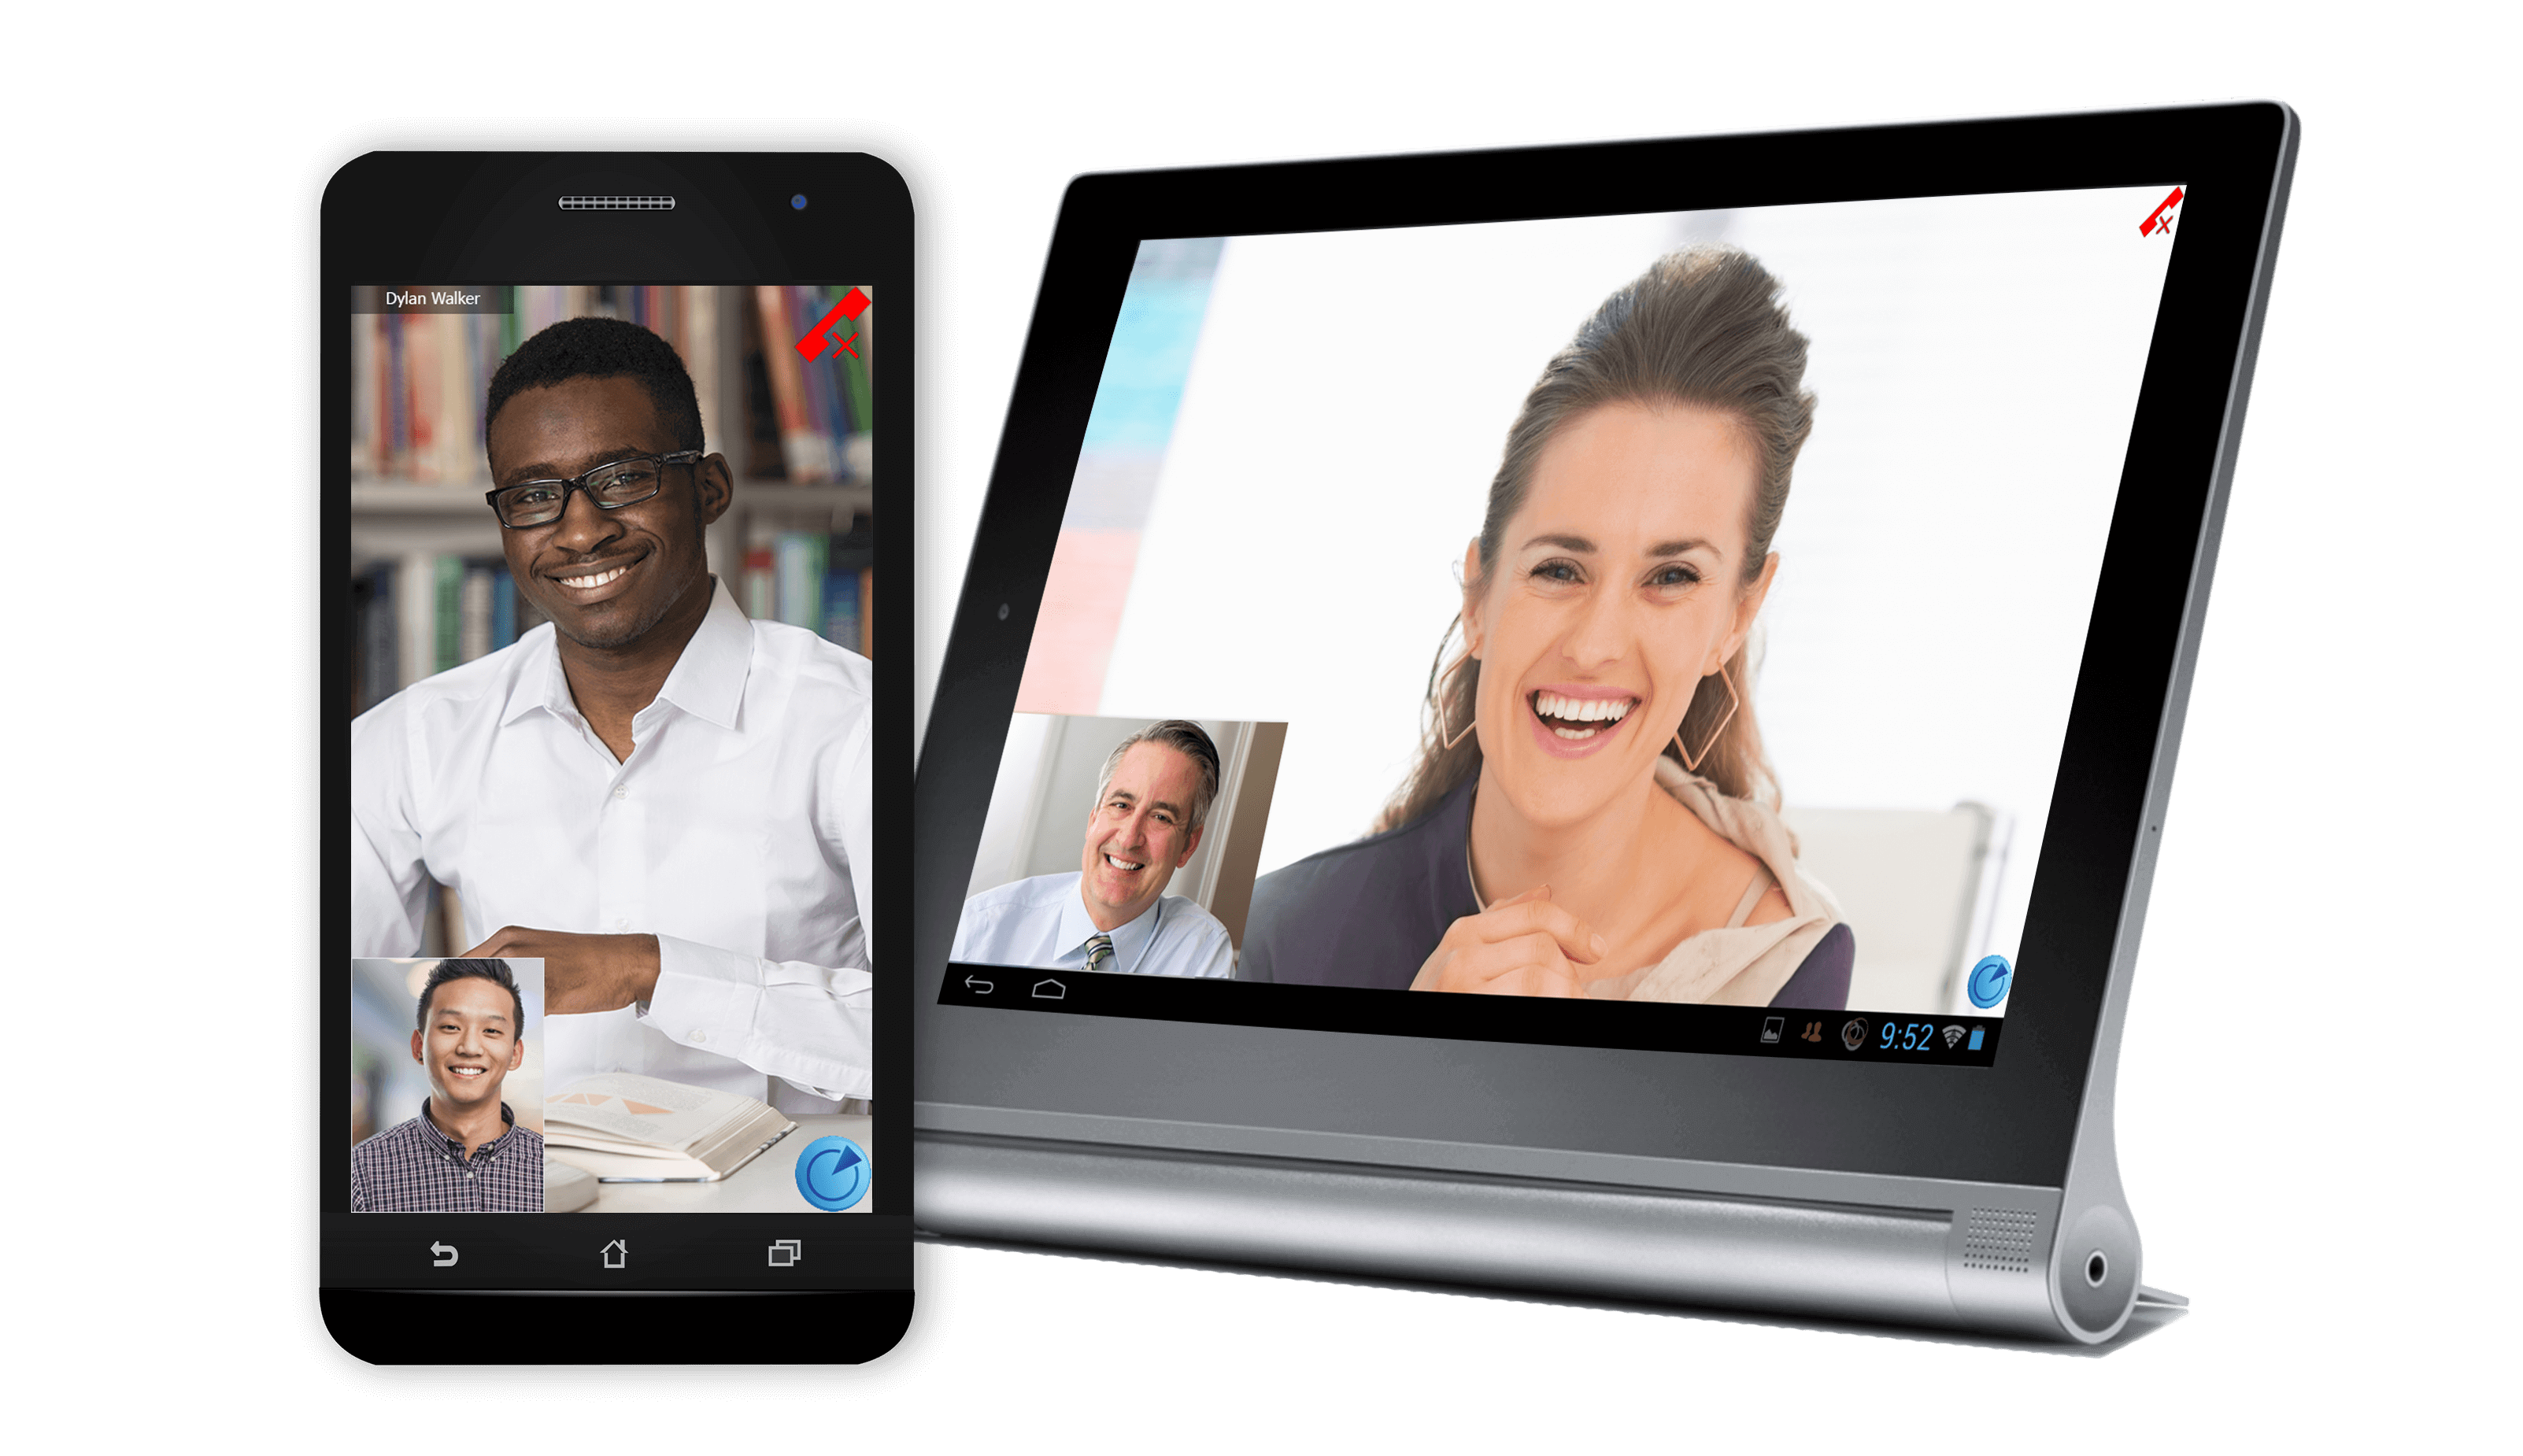 High-quality video conferencing